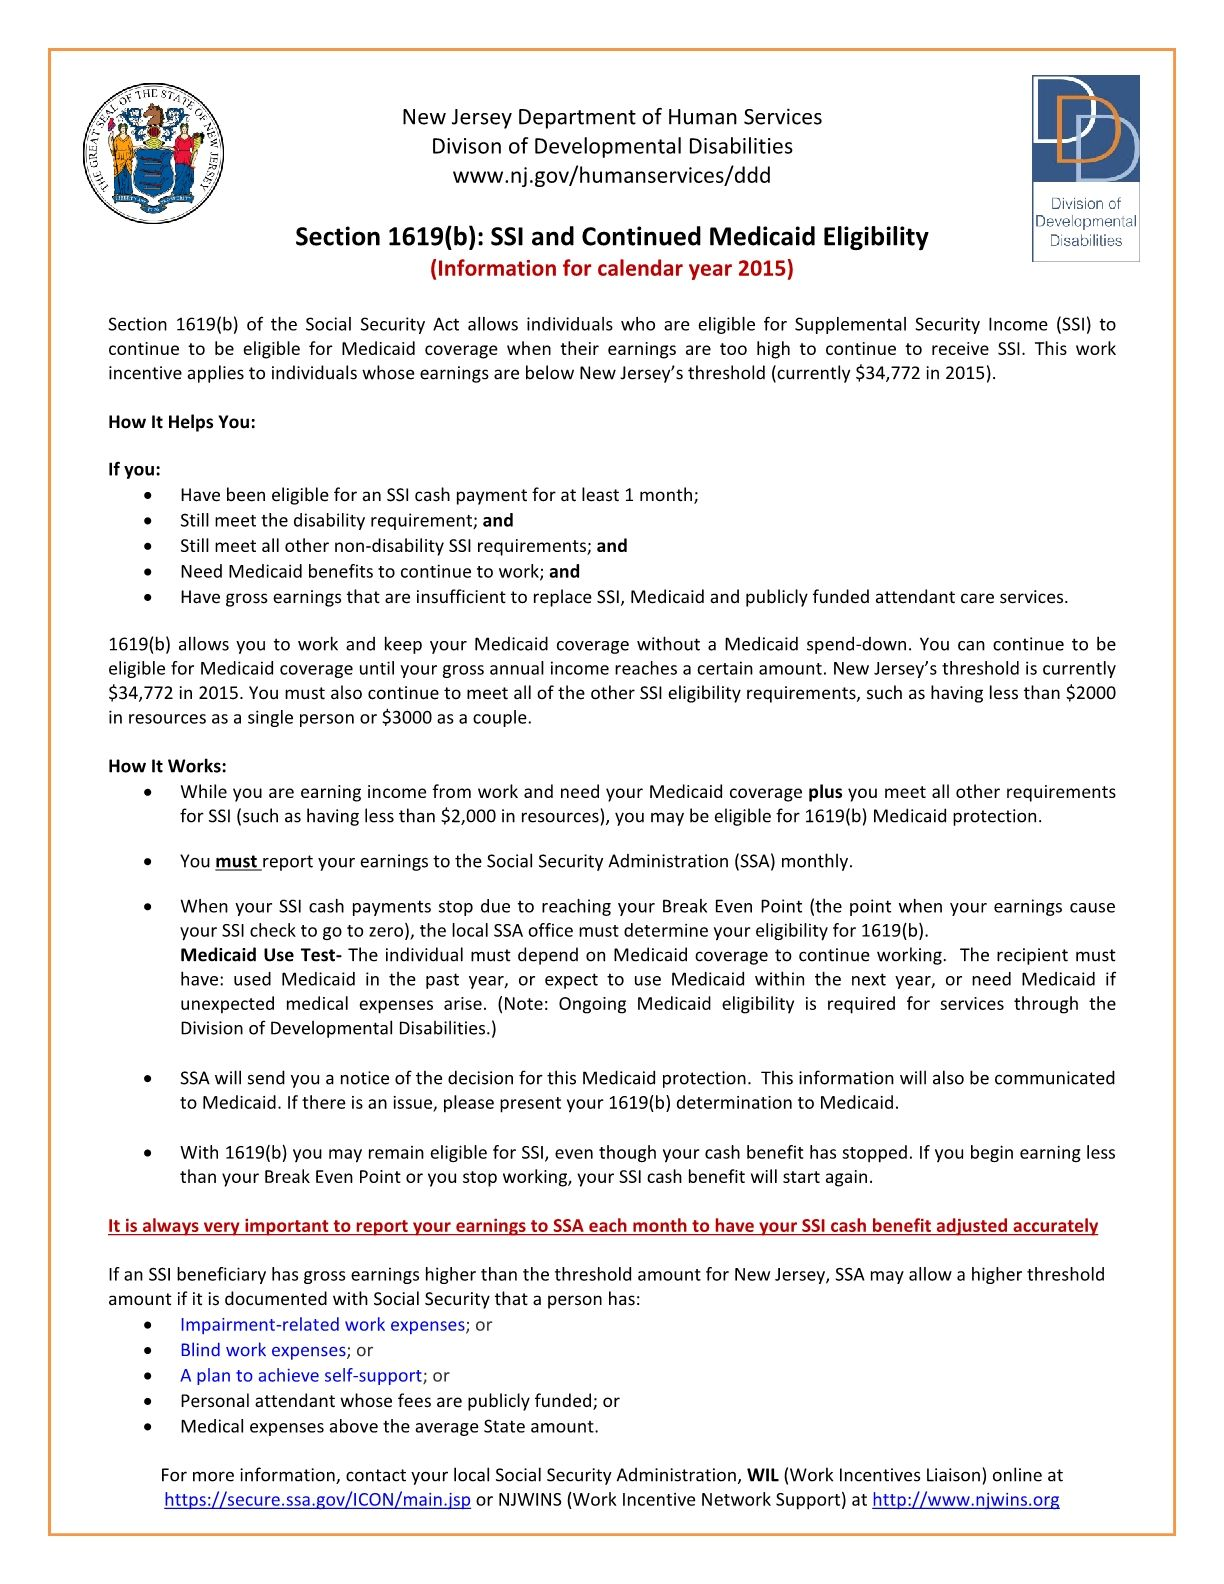 SSI and Continued Medicaid Eligibility While Working (Section 1619b Flyer)